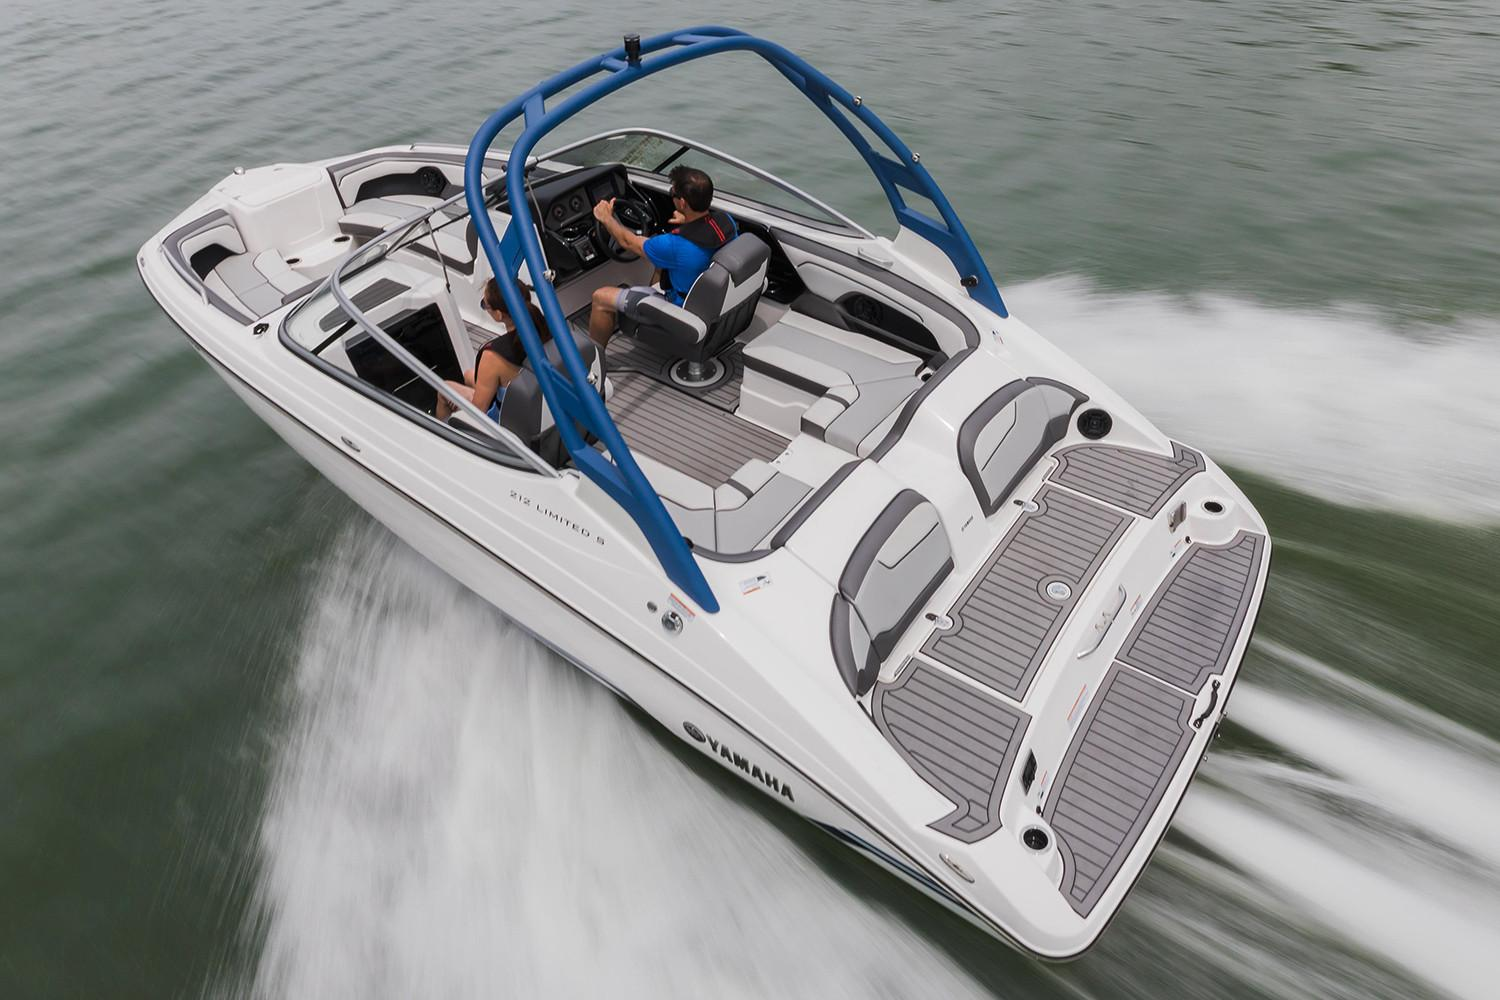 New 2018 Yamaha 212 Limited S Power Boats Inboard In Saint George